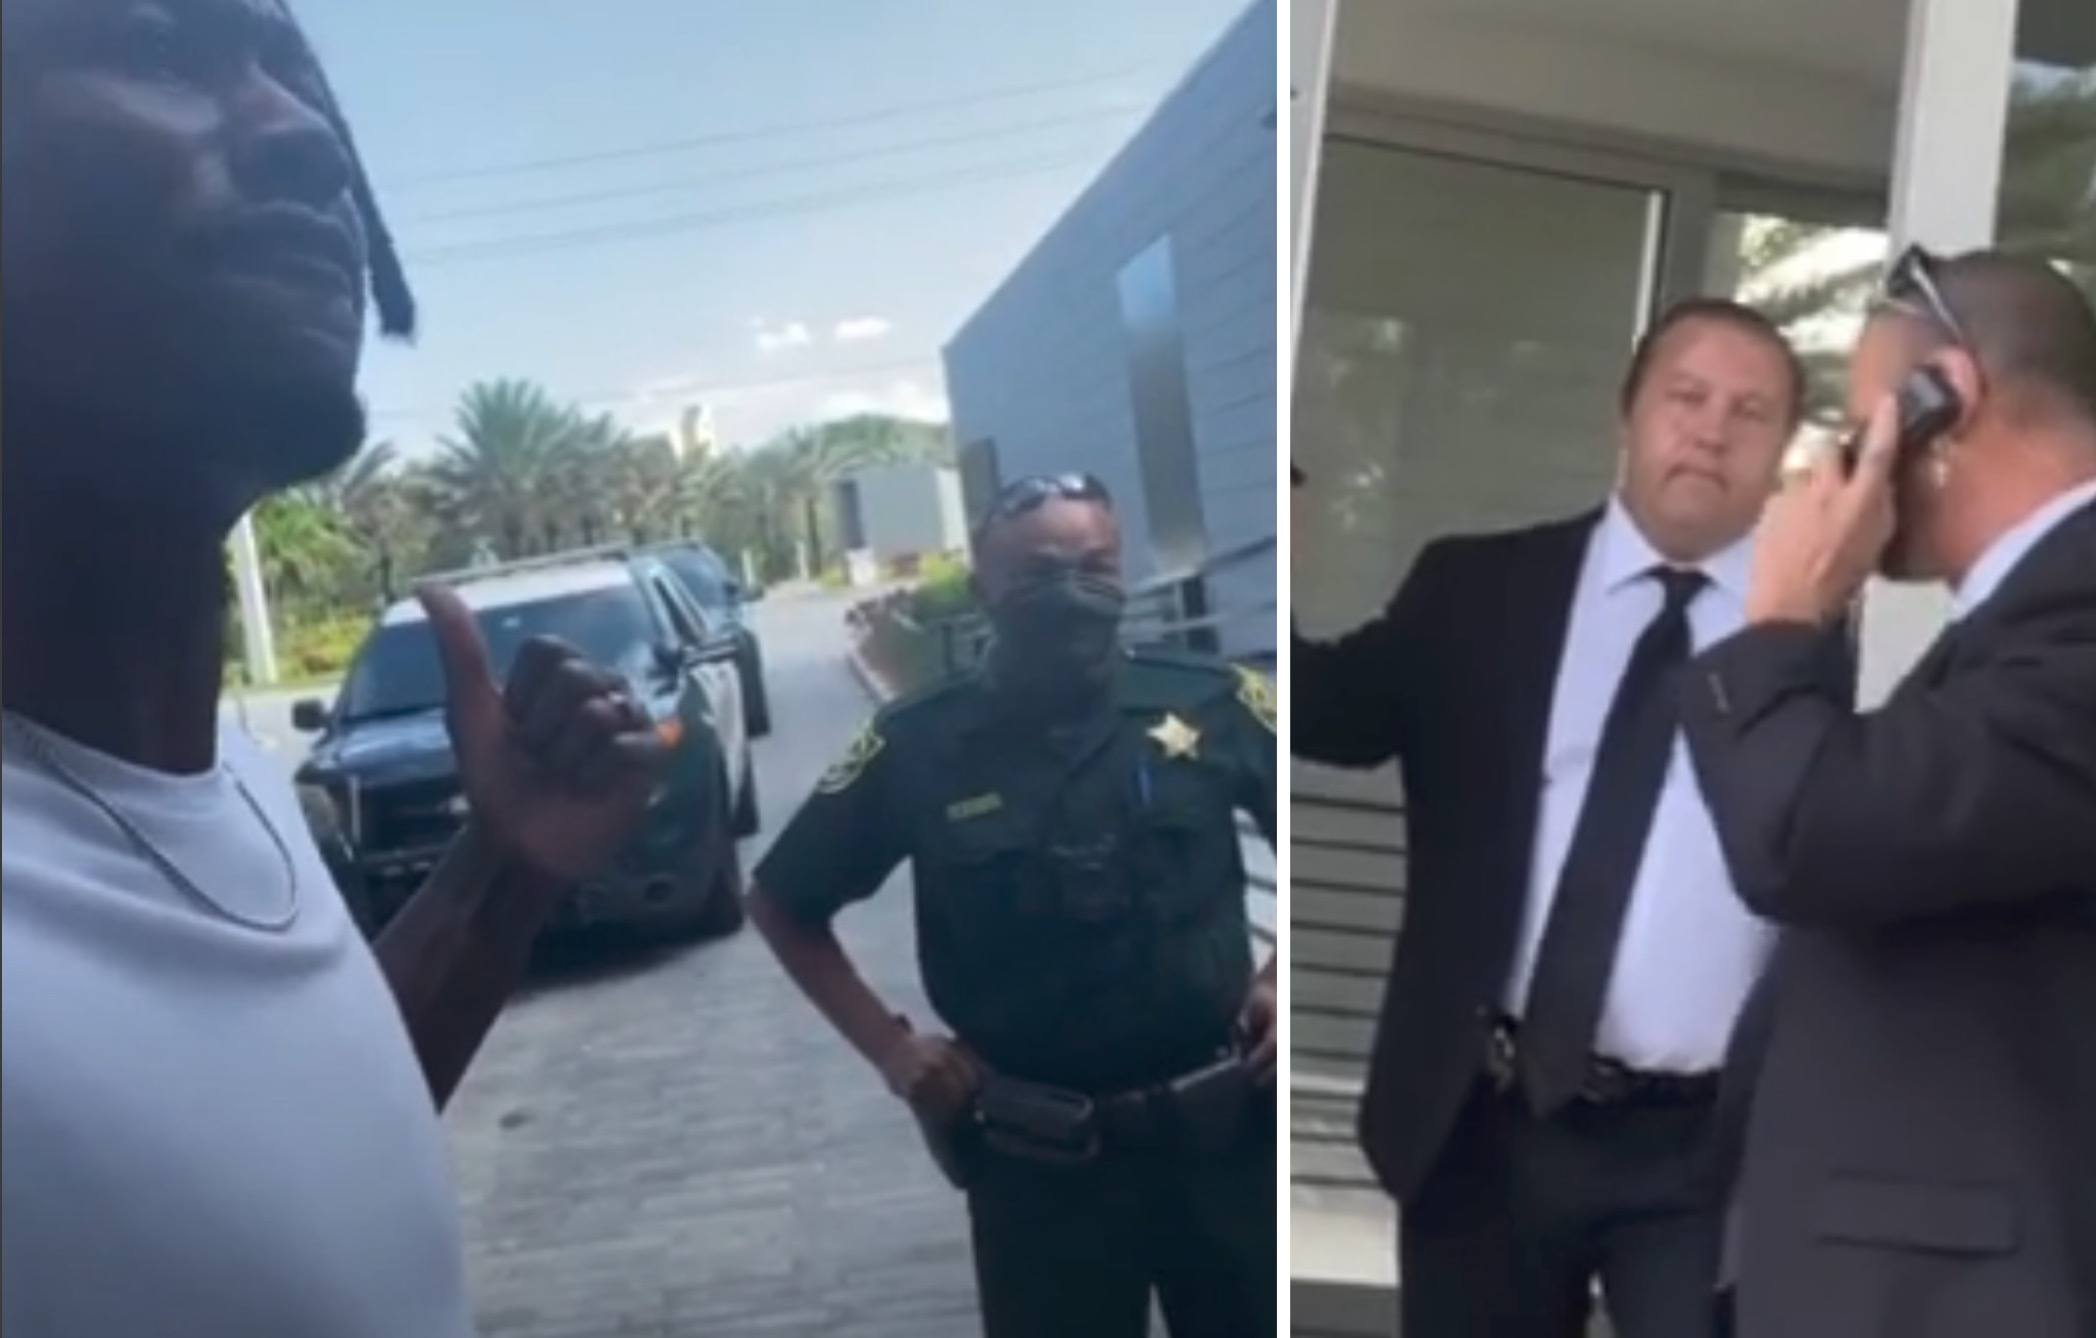 [VIDEO] Former NFL Player Claims Racism As Security Calls Police During Community Move-In